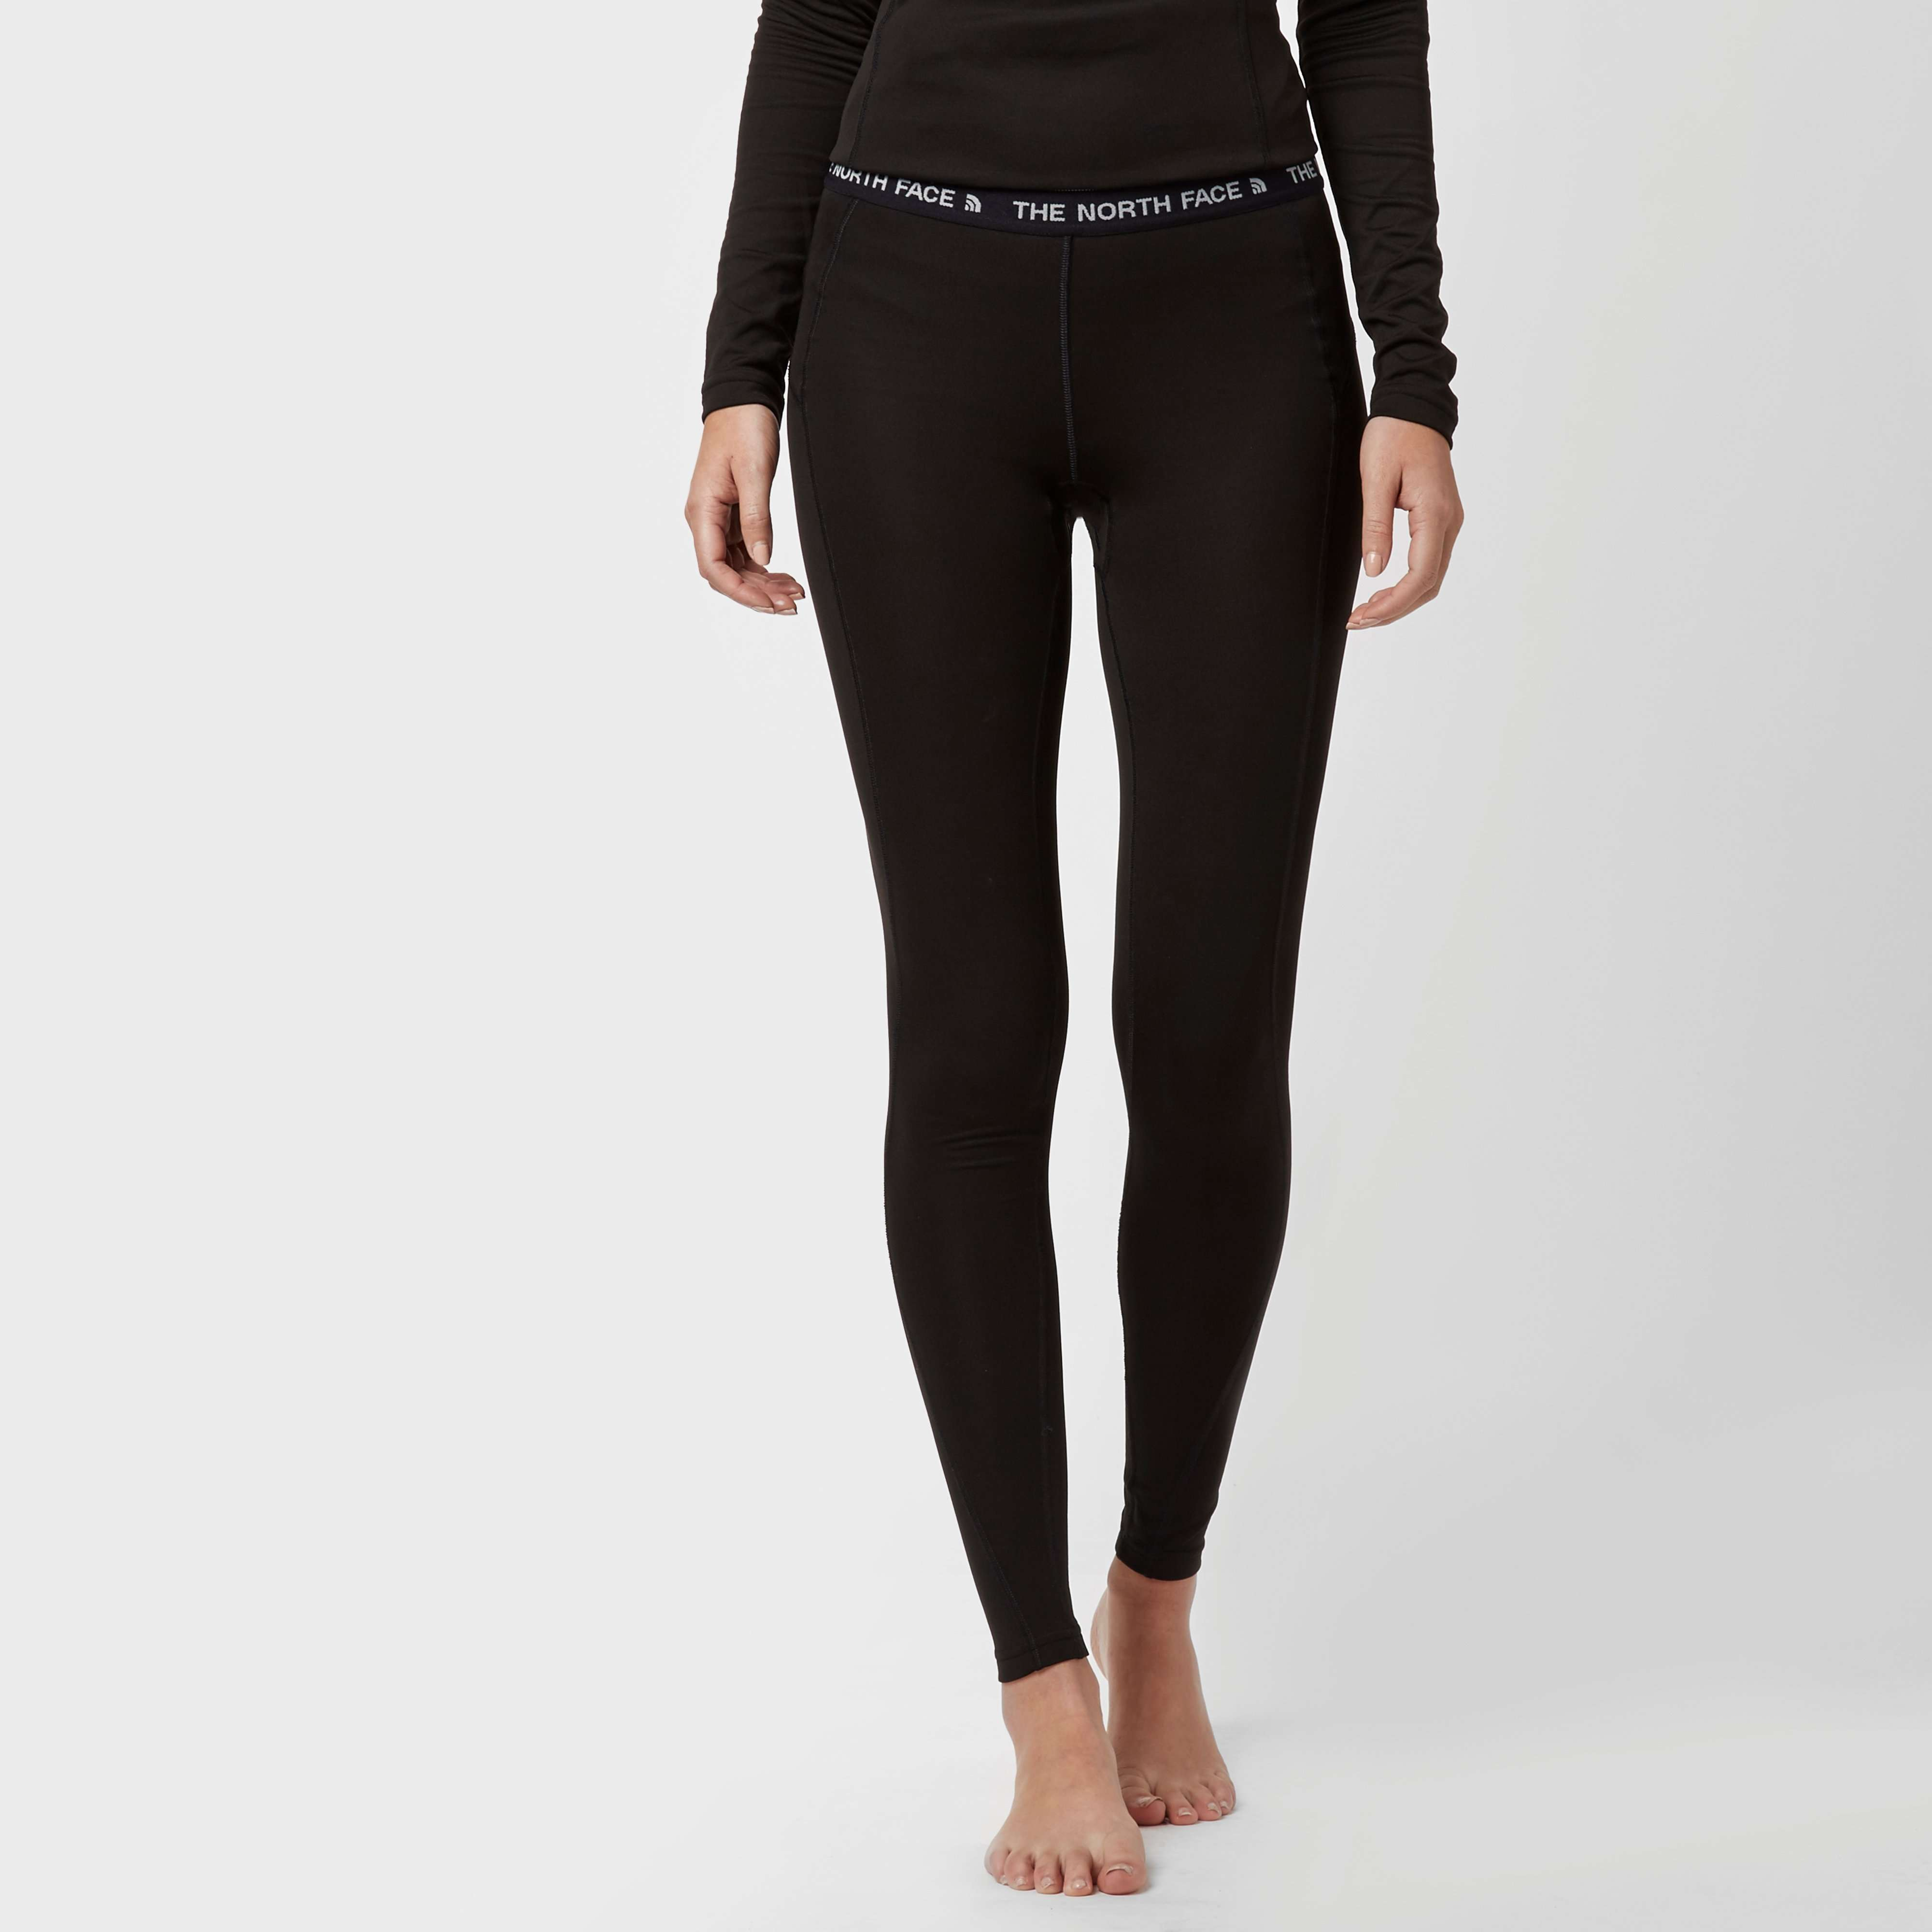 THE NORTH FACE Women's Hybrid Baselayer Tights